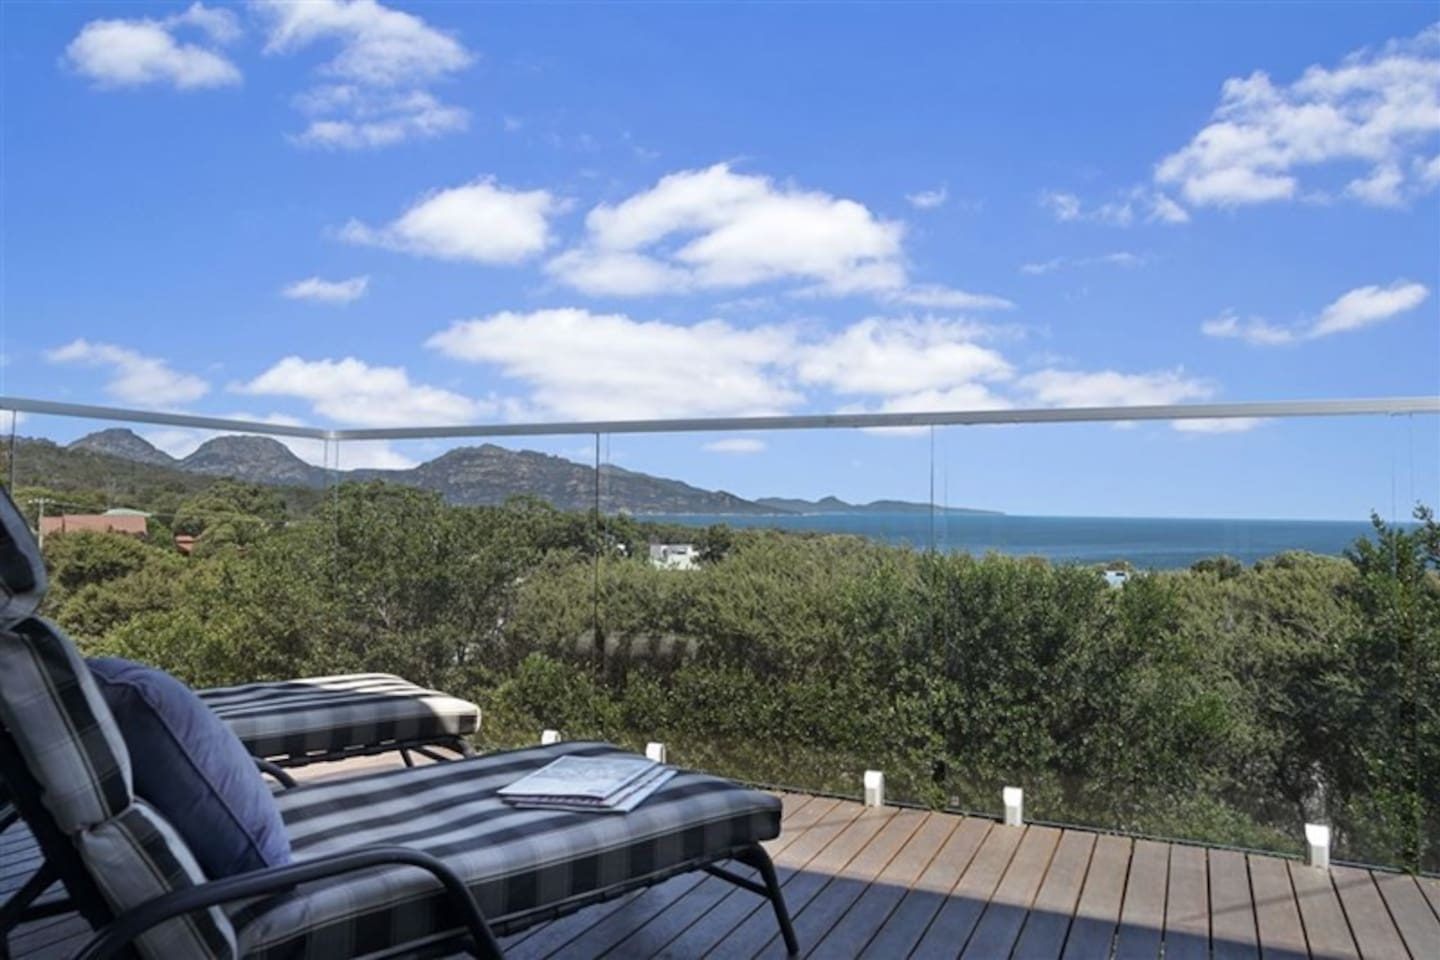 Stunning ocean view and The Hazards Mountain, home of Wineglass Bay